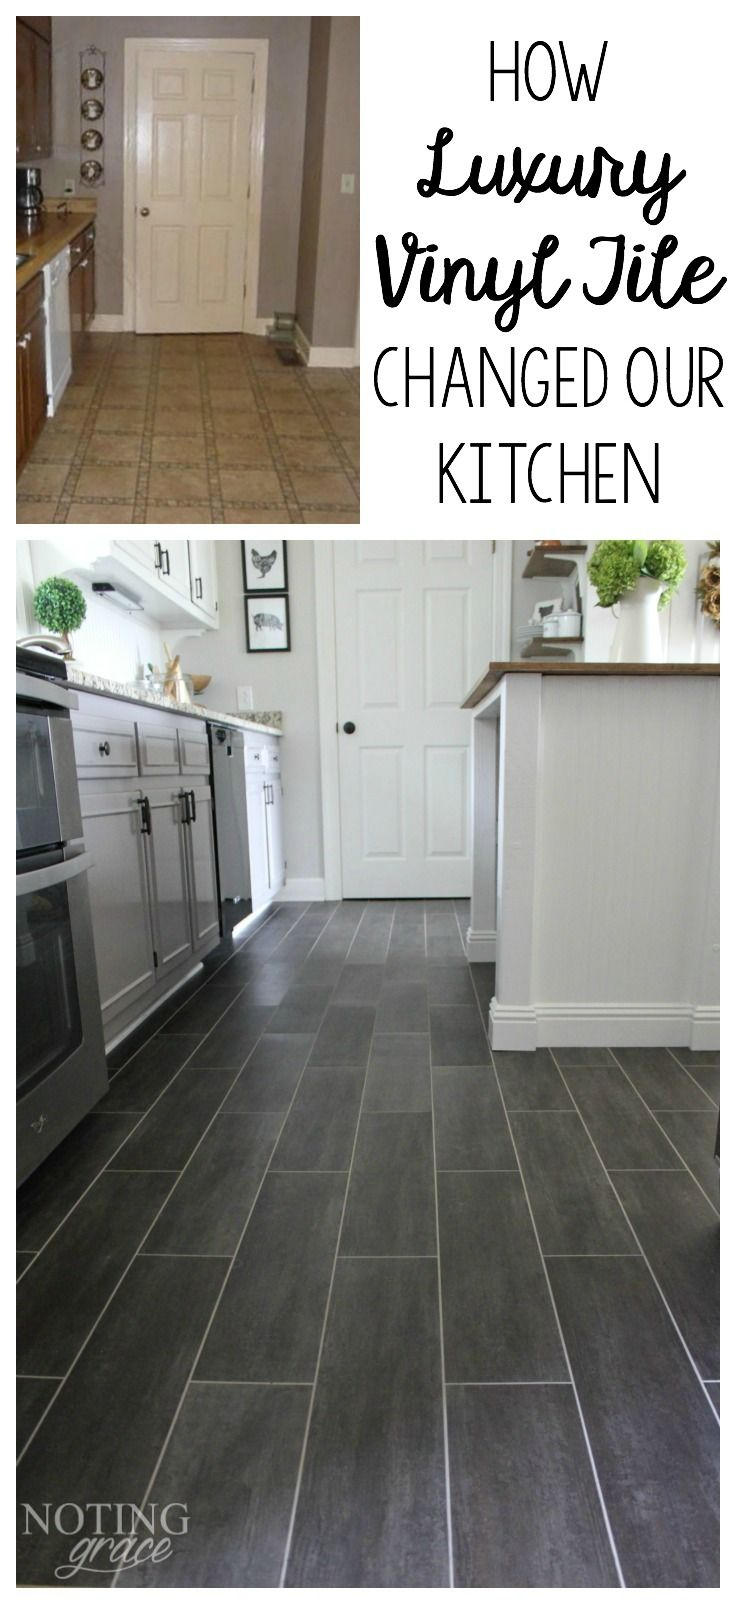 DIY Kitchen Flooring Diy kitchen flooring, Inexpensive